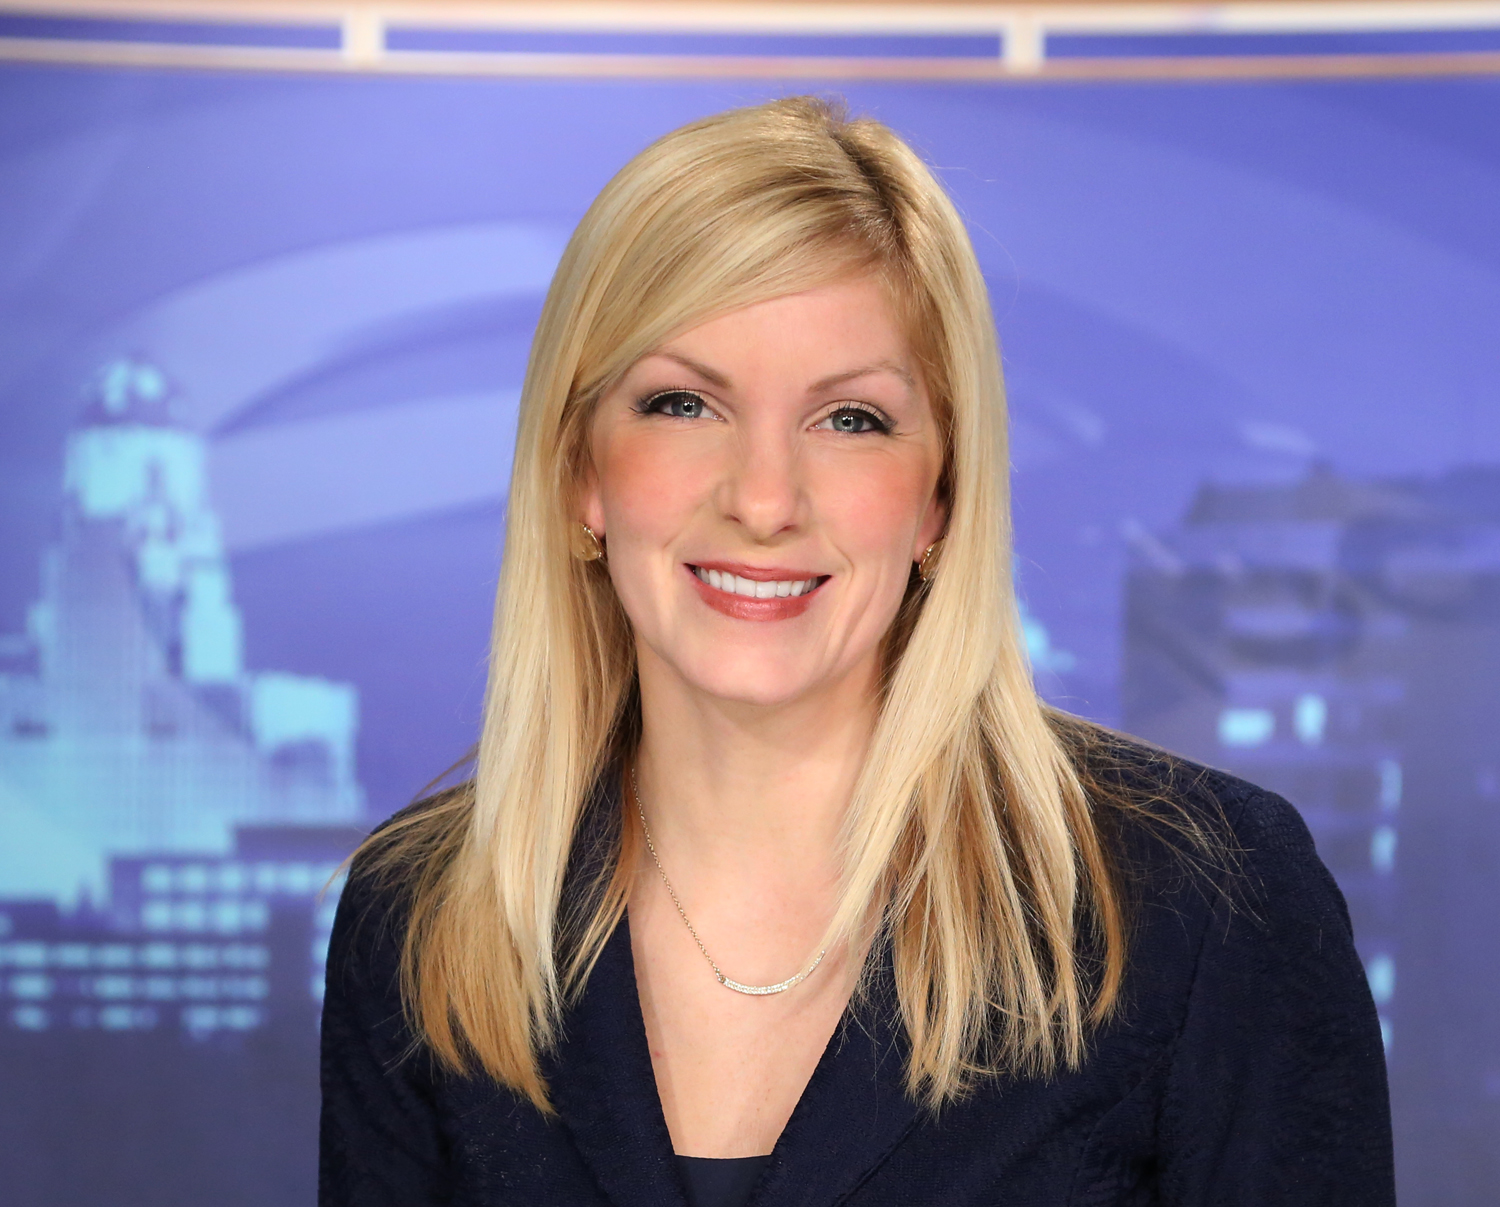 Ali Touhey: Set to anchor new Channel 7 weekend morning newscasts (Channel 7 photo)